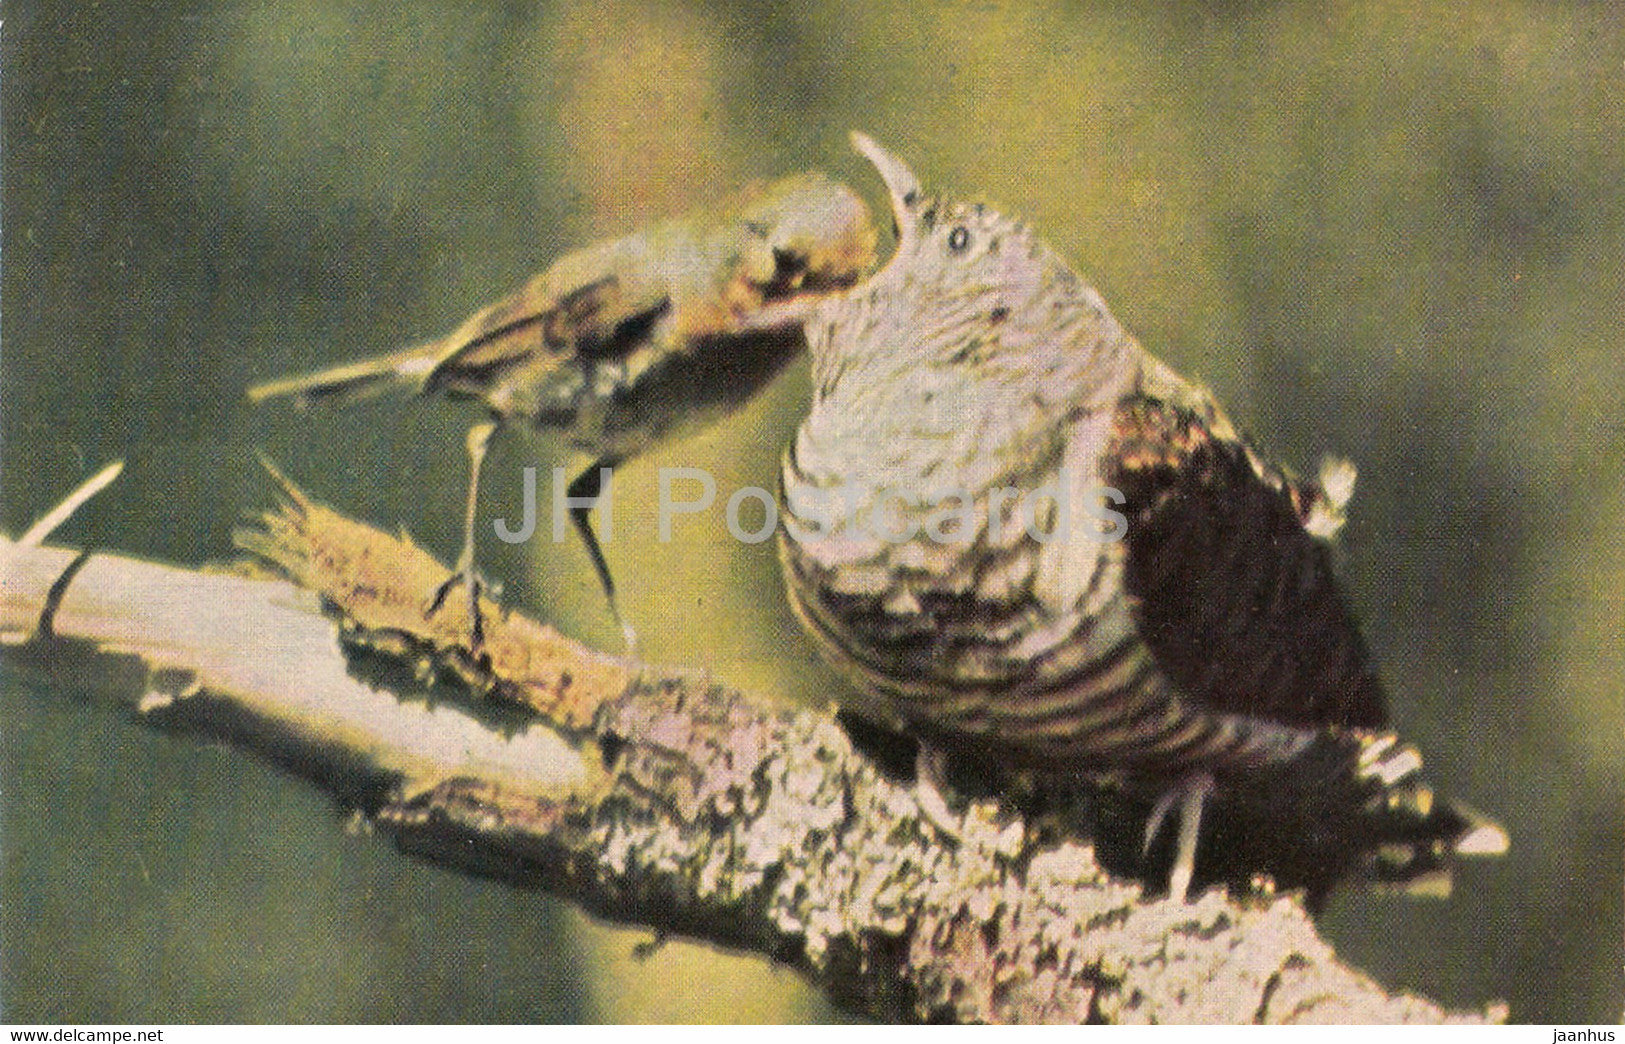 European robin - Erithacus rubecula - birds - 1968 - Russia USSR - unused - JH Postcards